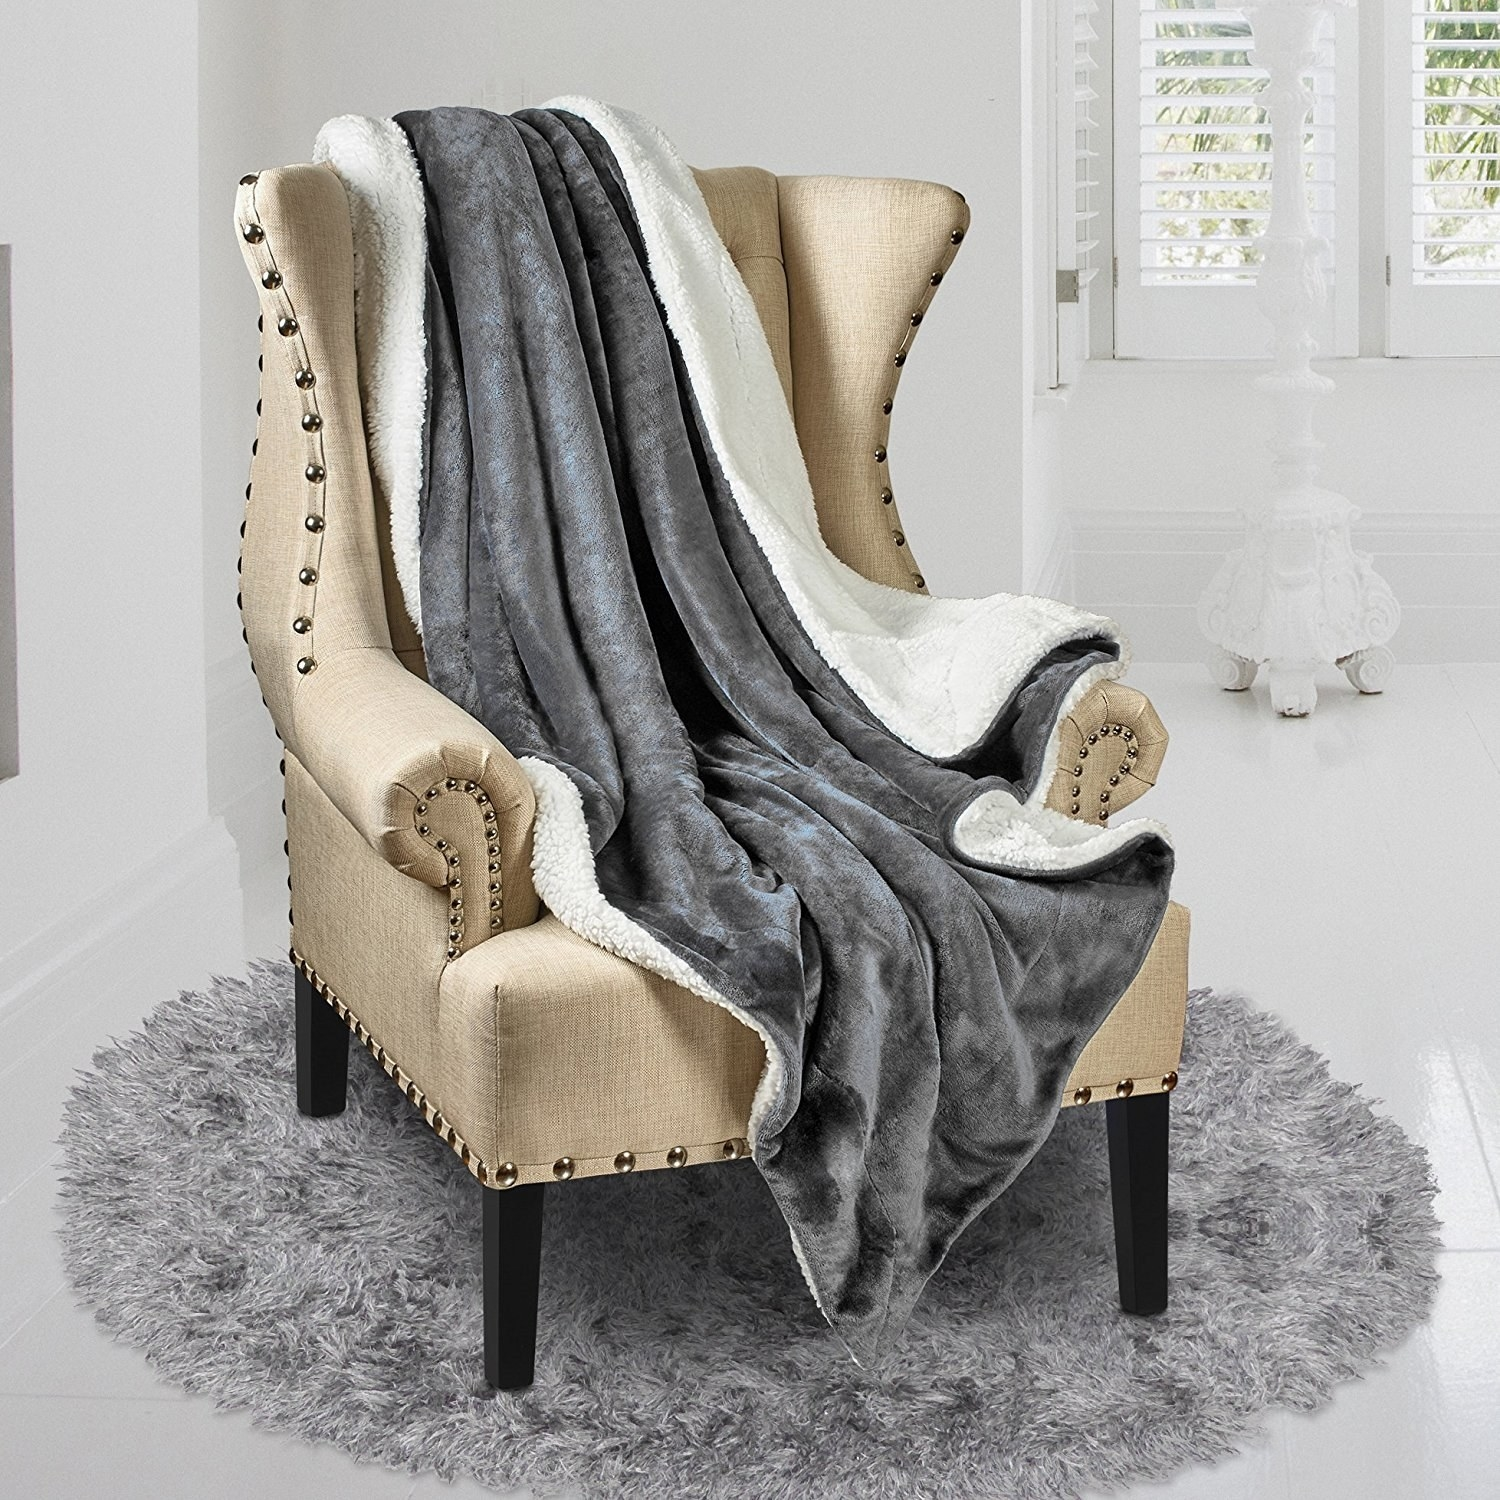 blanket styled and draped over a chair